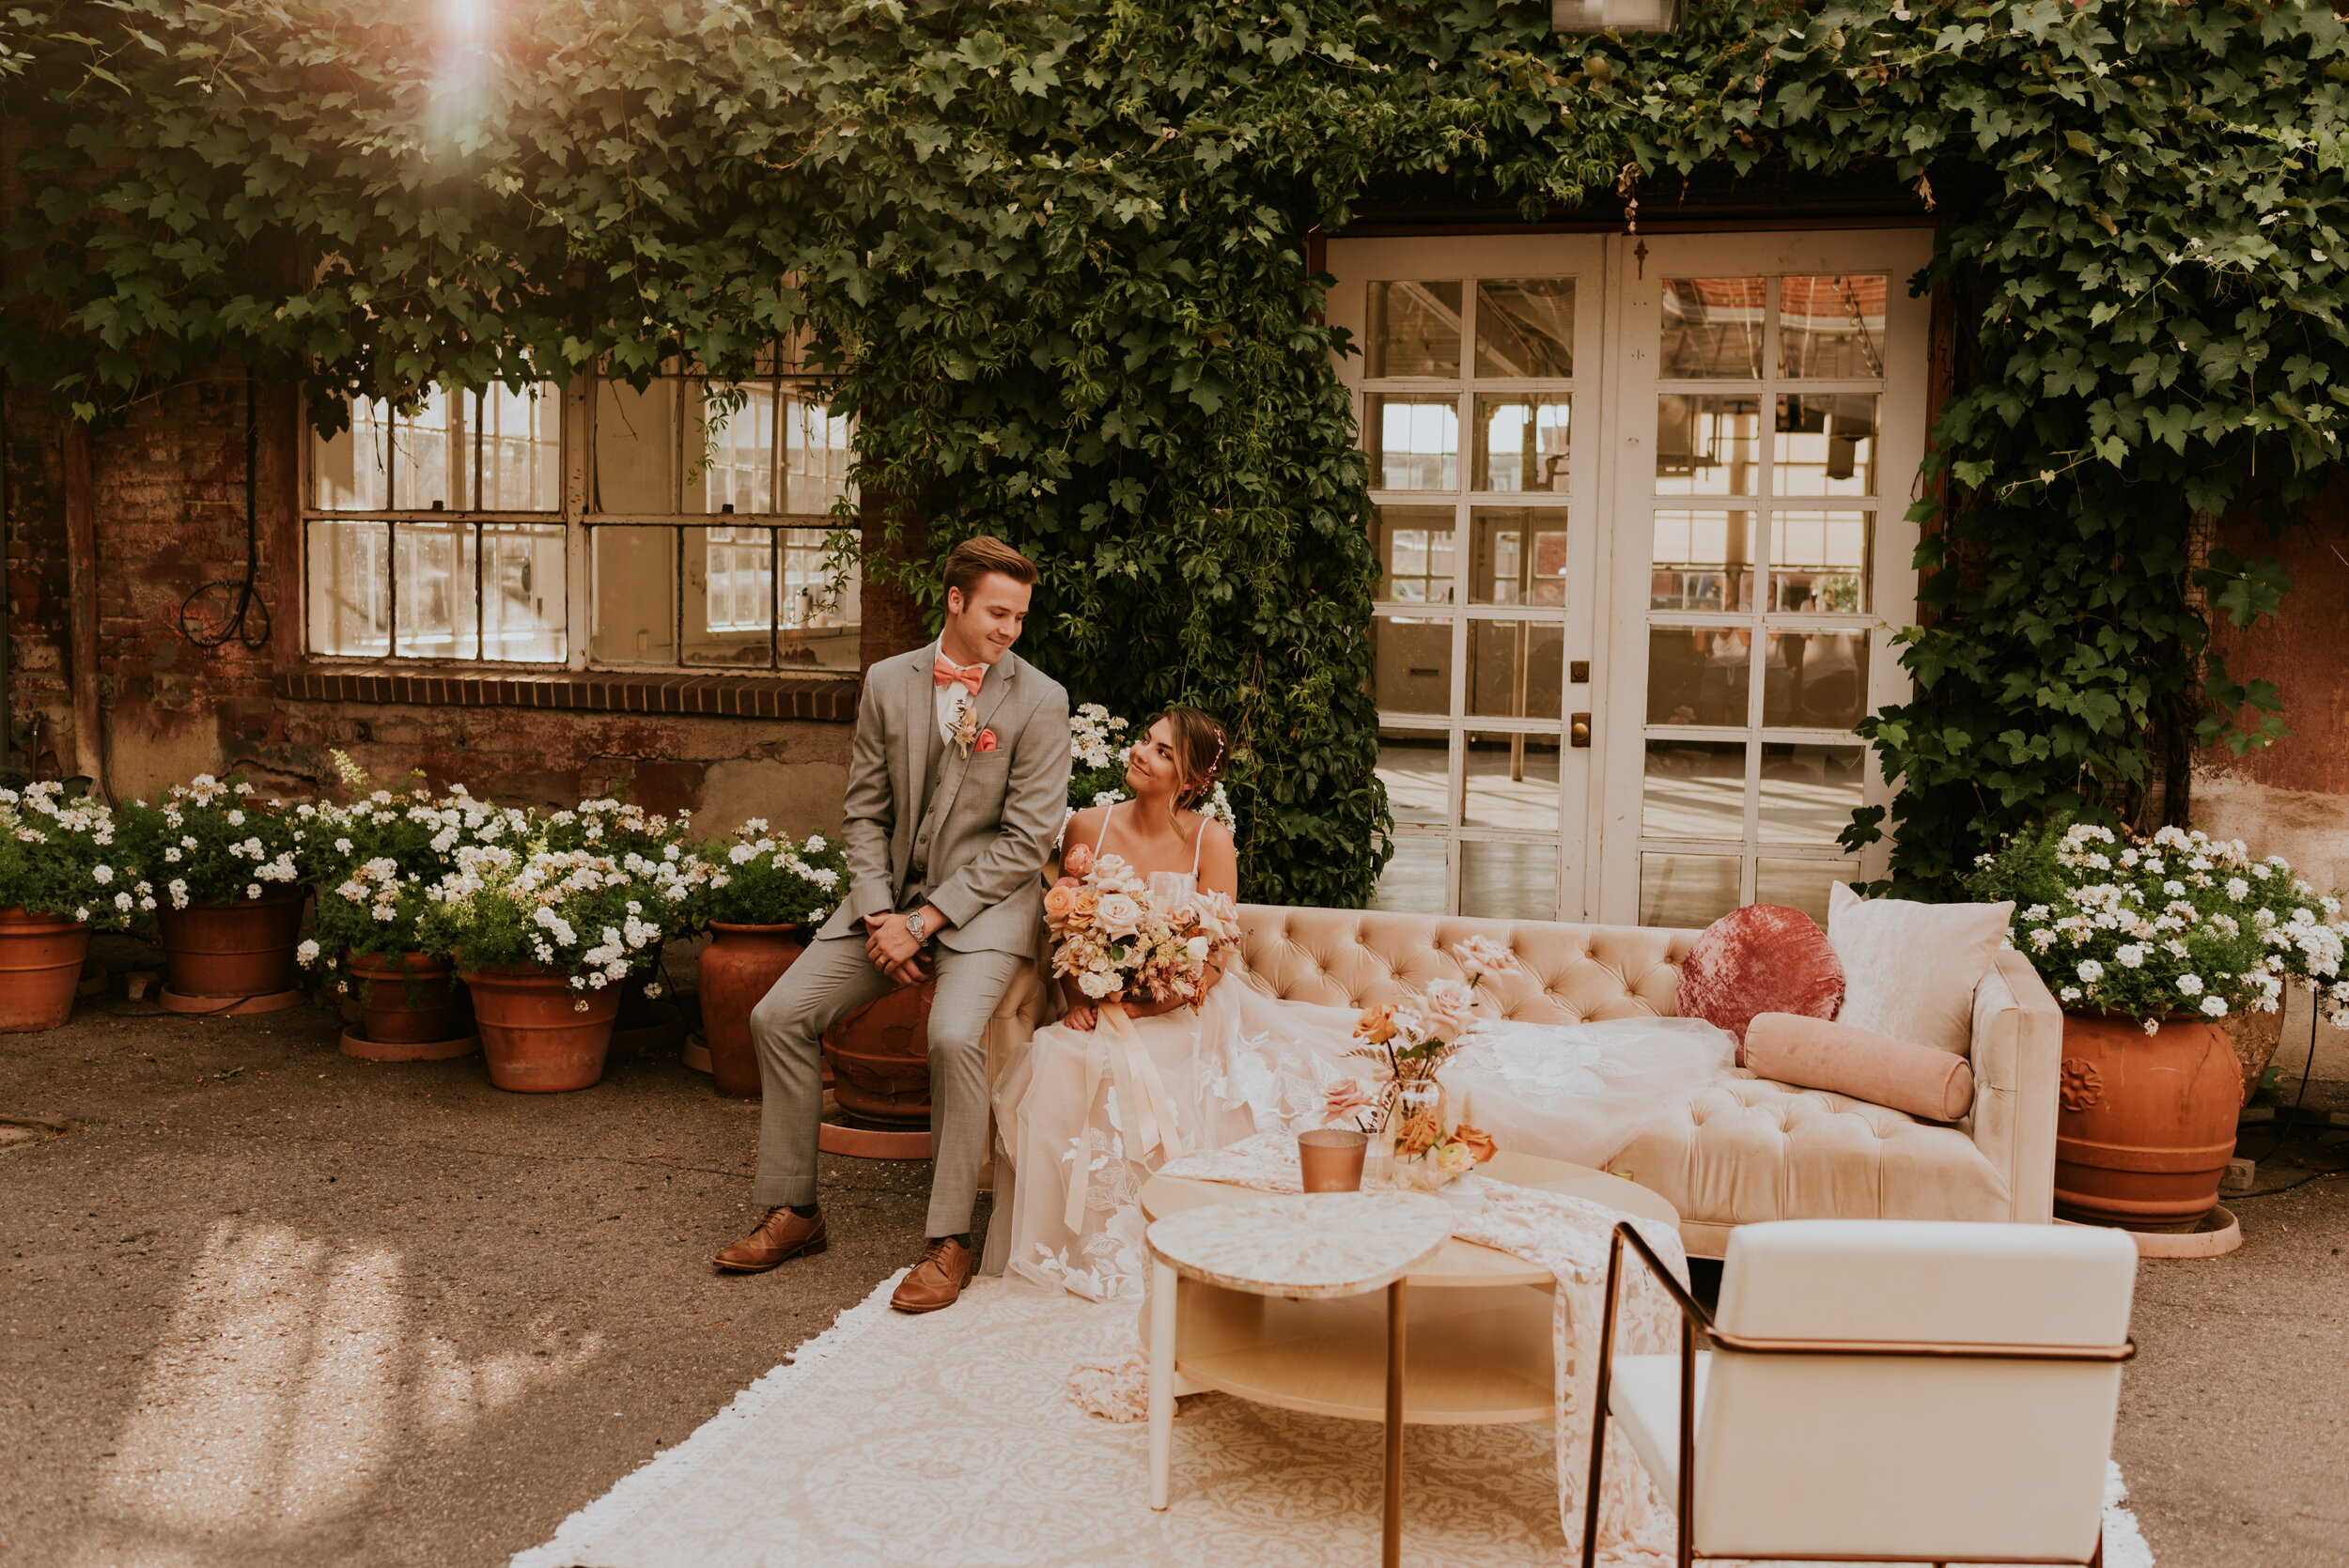 Blanc - Denver, Colorado Wedding Venue | Eclectic and Versatile Wedding Venue | Colorado Wedding Photography - Carrie Rogers Photography